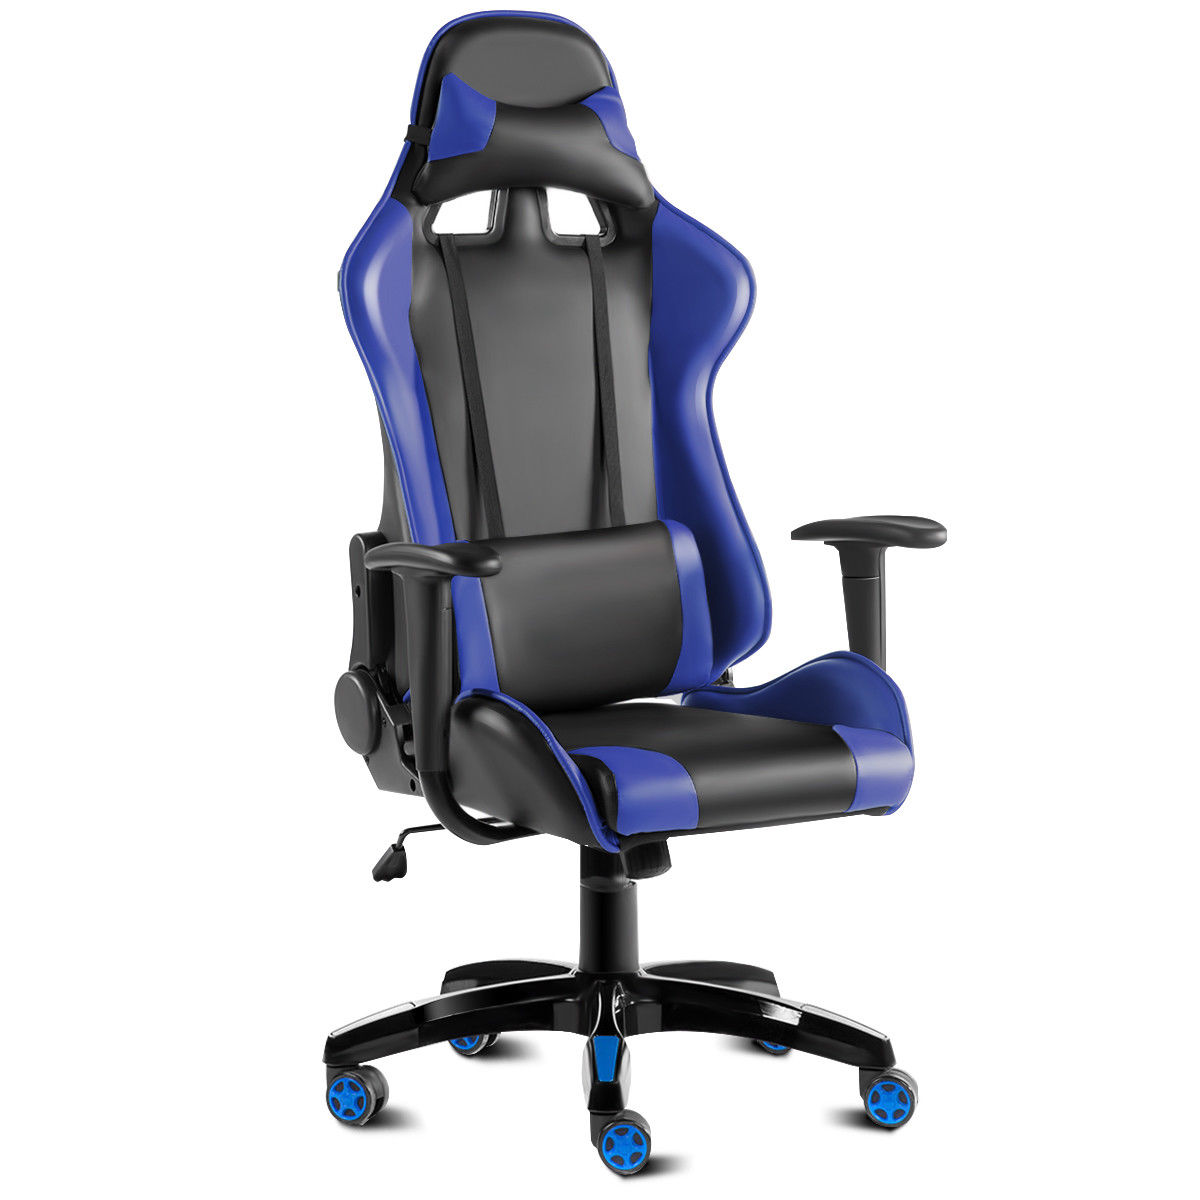 reclining gaming chair cowhide dining room covers costway high back racing style office executive task computer blue black walmart com